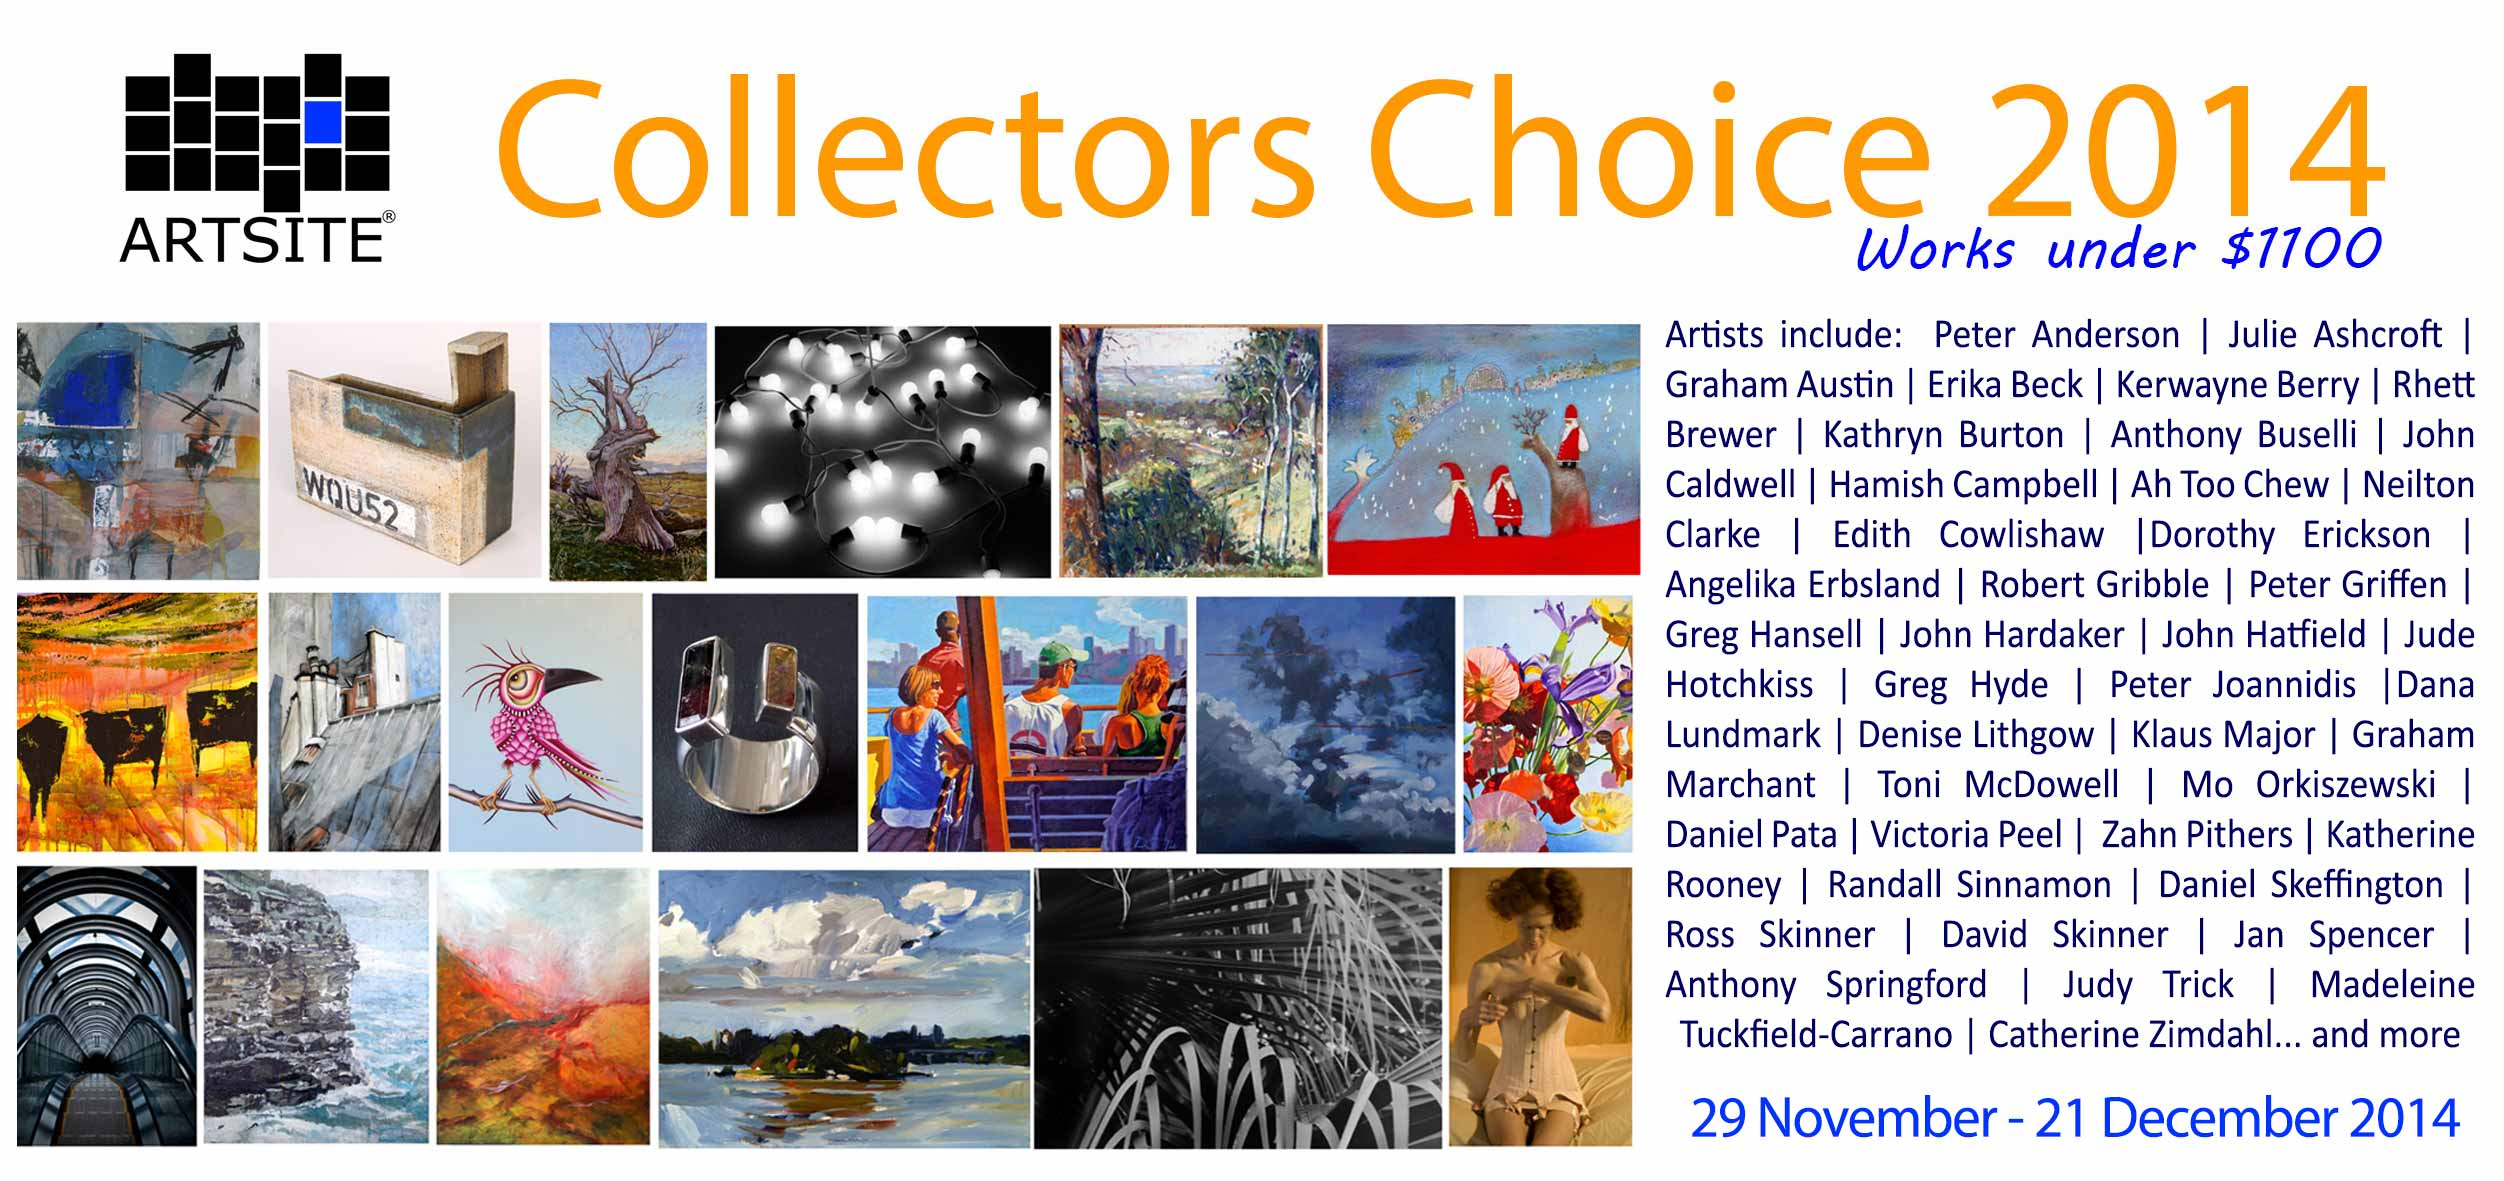 View Exhibition at Artsite Gallery, Sydney: 29 November - 21 December 2014. Collectors Choice 2014